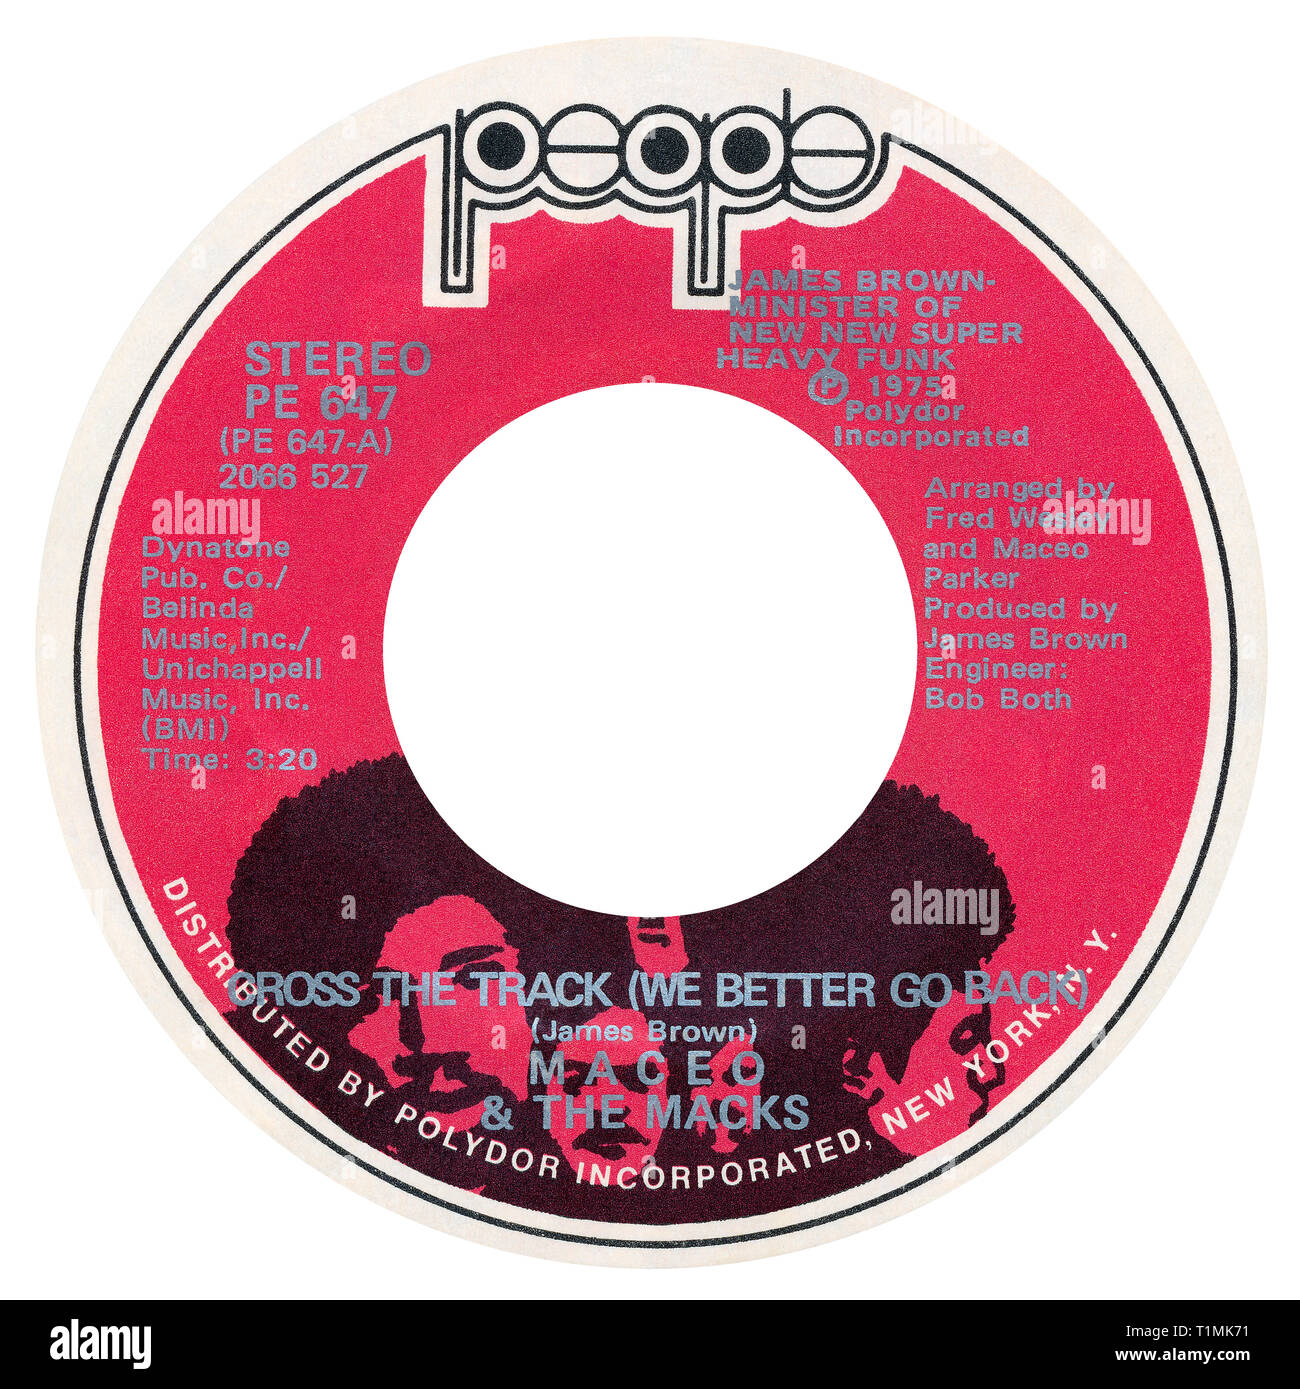 US 45 rpm single of Cross The Track (We Better Go Back) by Maceo and the Macks on the People label from 1975. Composed and produced by James Brown and arranged by Fred Wesley and Maceo Parker. - Stock Image